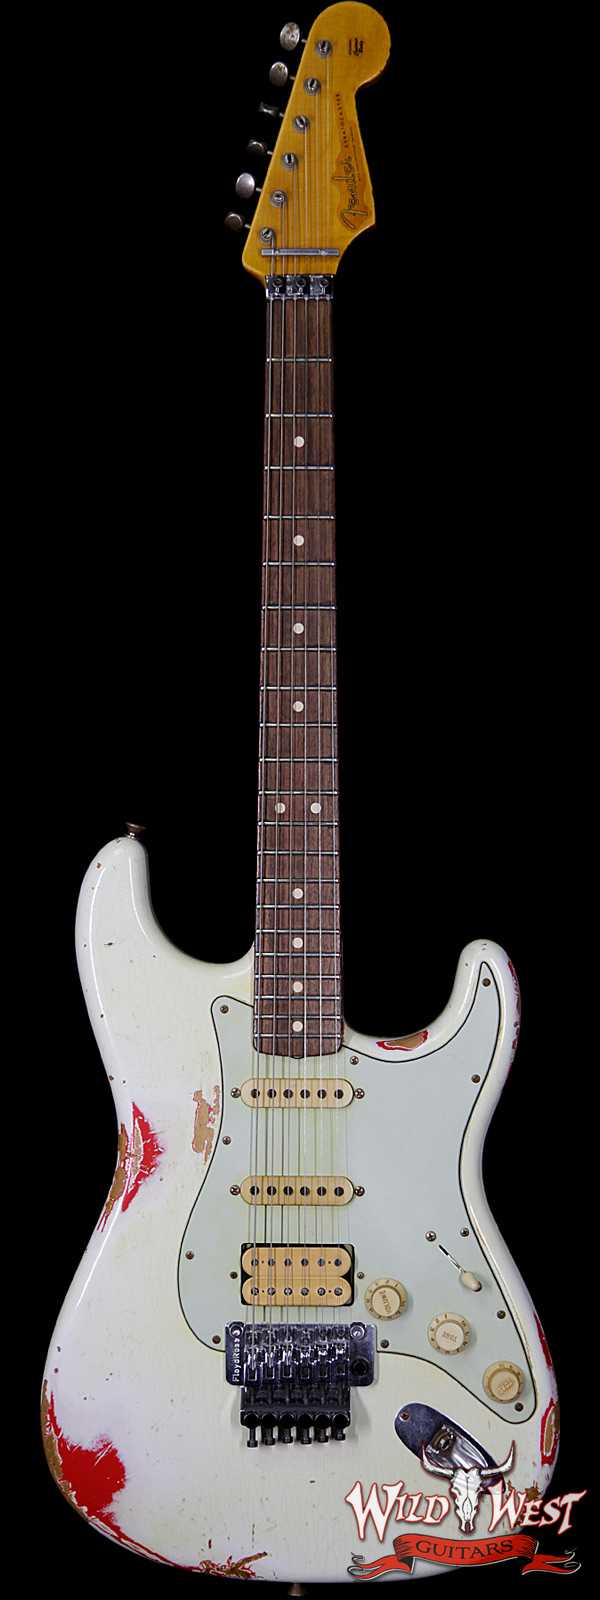 Fender Custom Shop White Lightning Floyd Rose HSS 1960 Stratocaster Heavy Relic Olympic White over Hot Rod Red